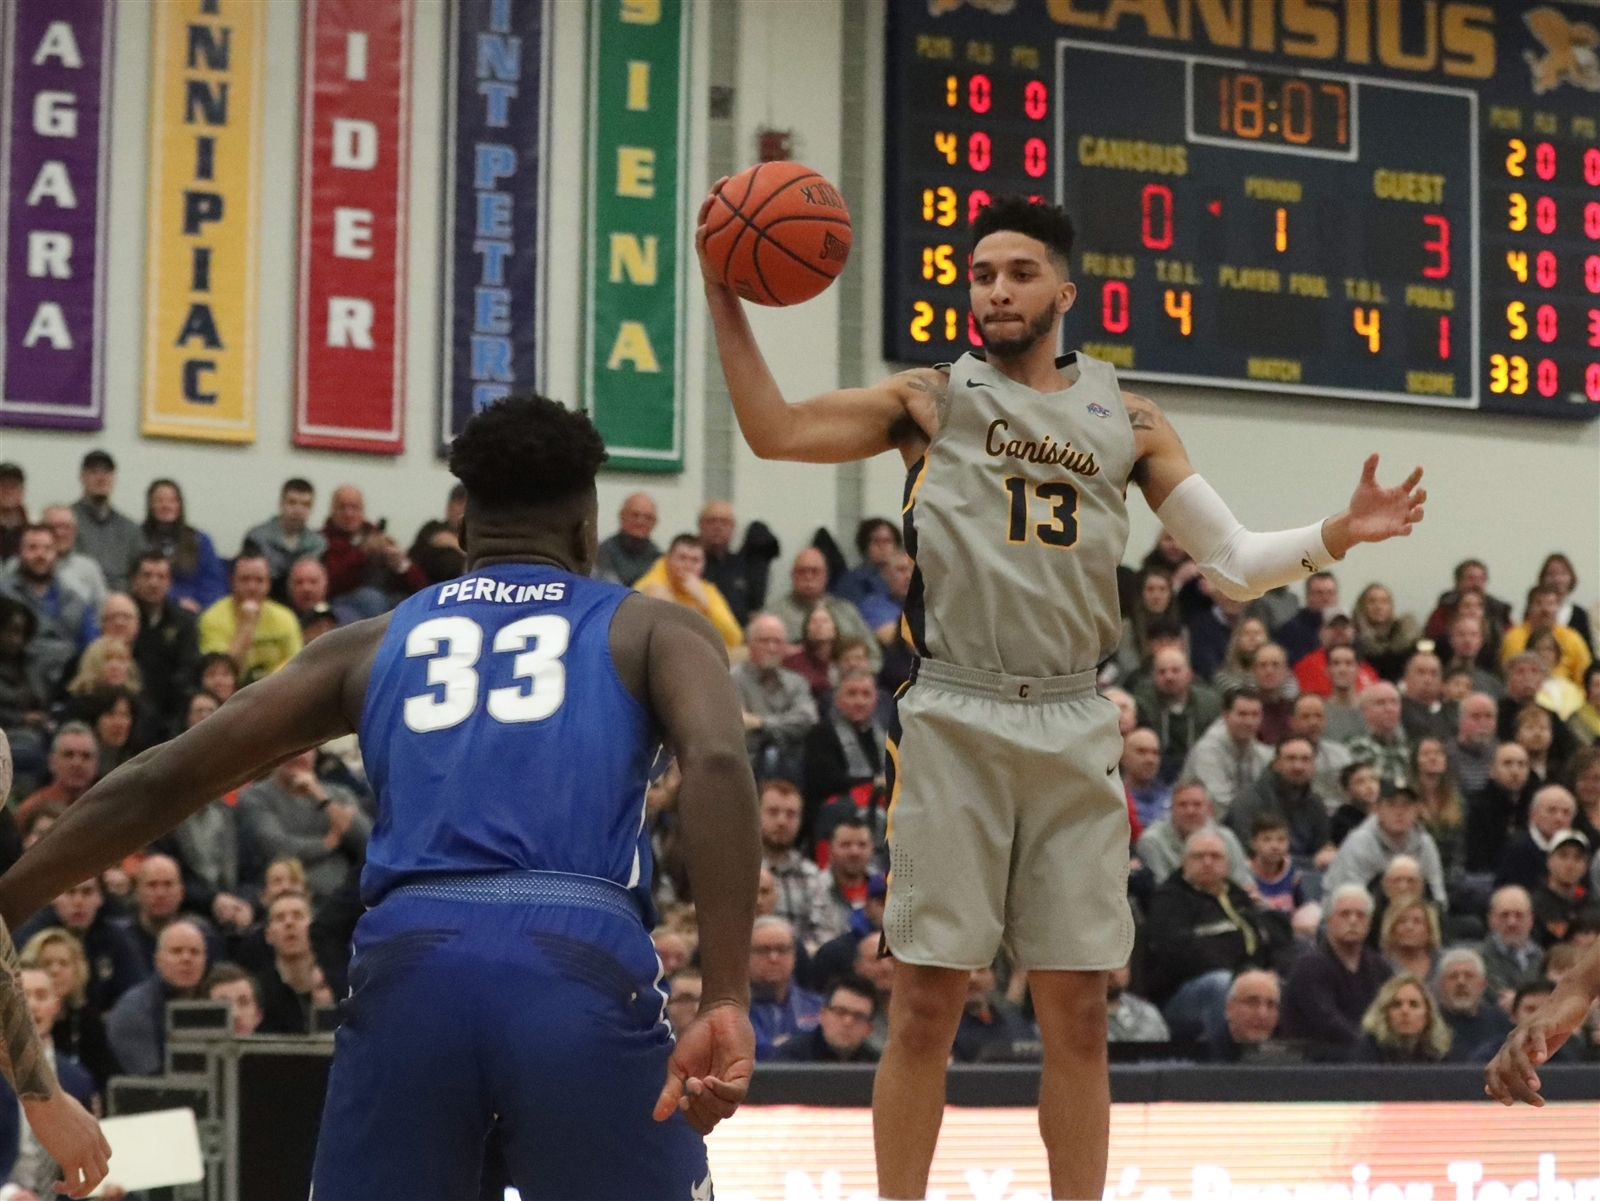 Canisius Golden Griffins guard Isaiah Reese rebounds the ball in the first half.